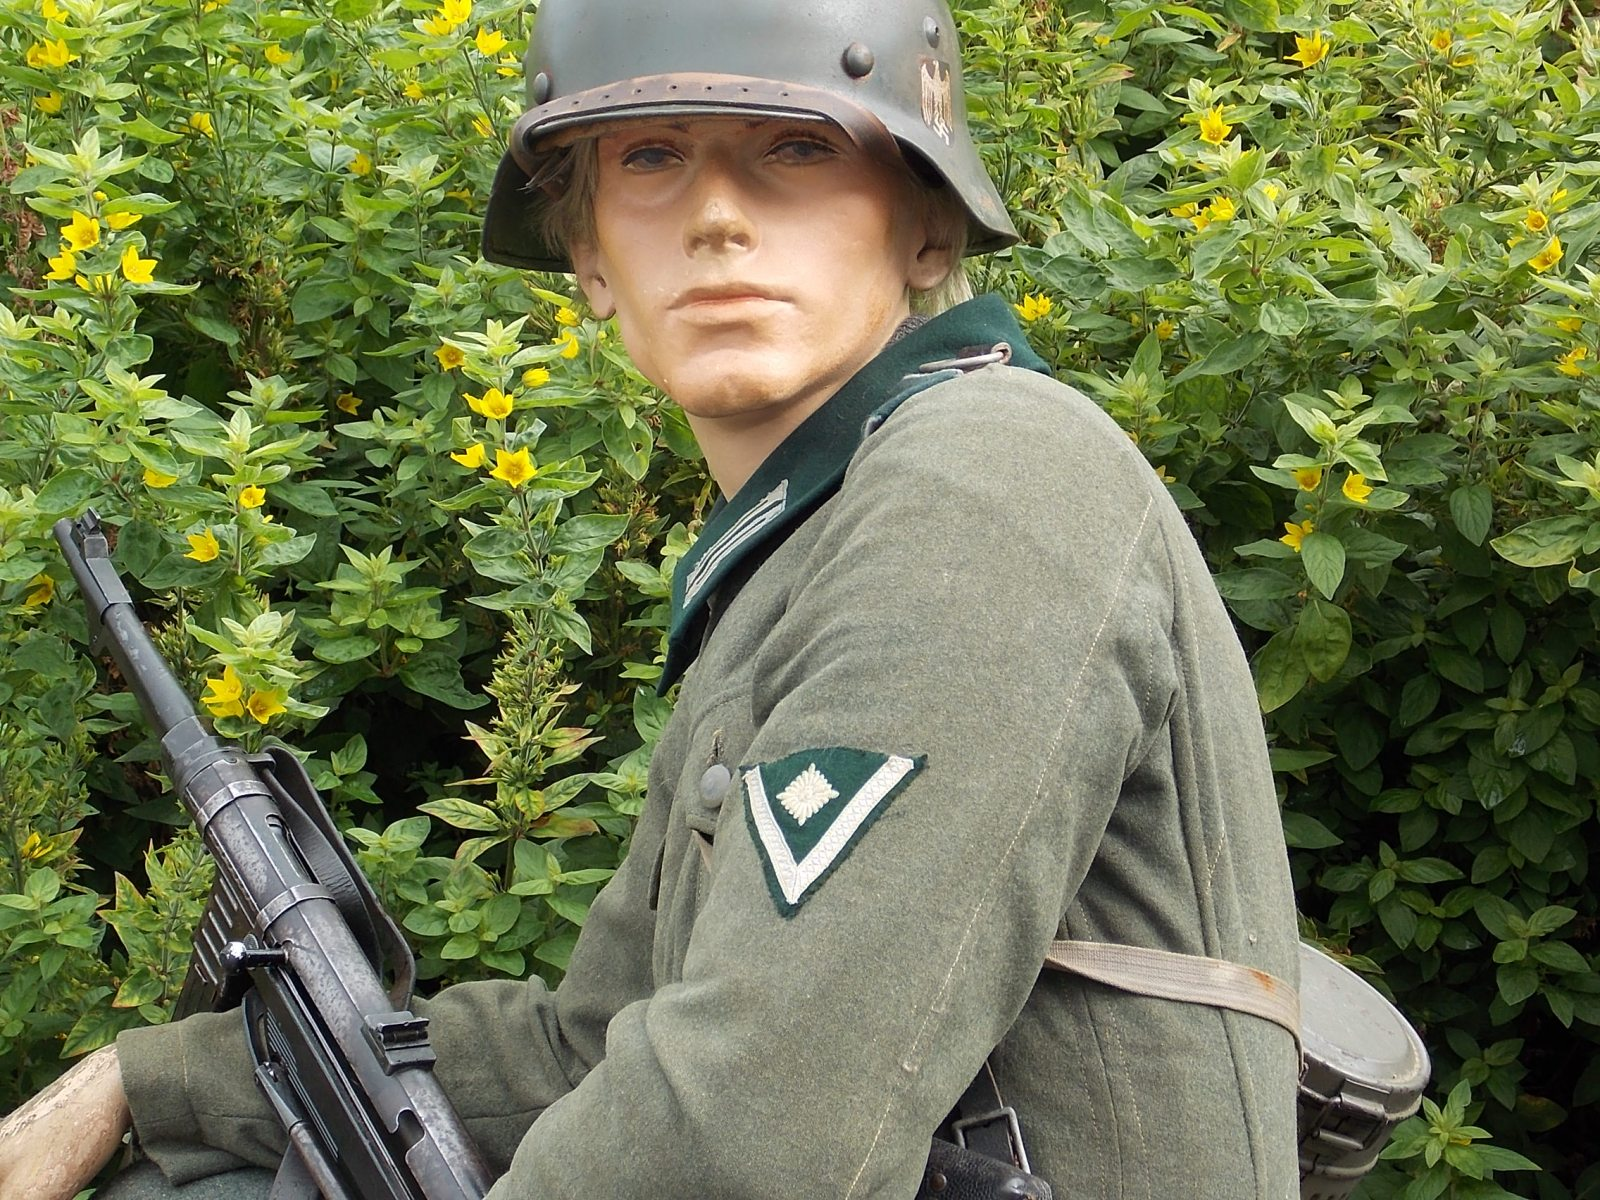 1936-Obergefreiter-service-tunic-The-Abingdon-Collection-photo-7